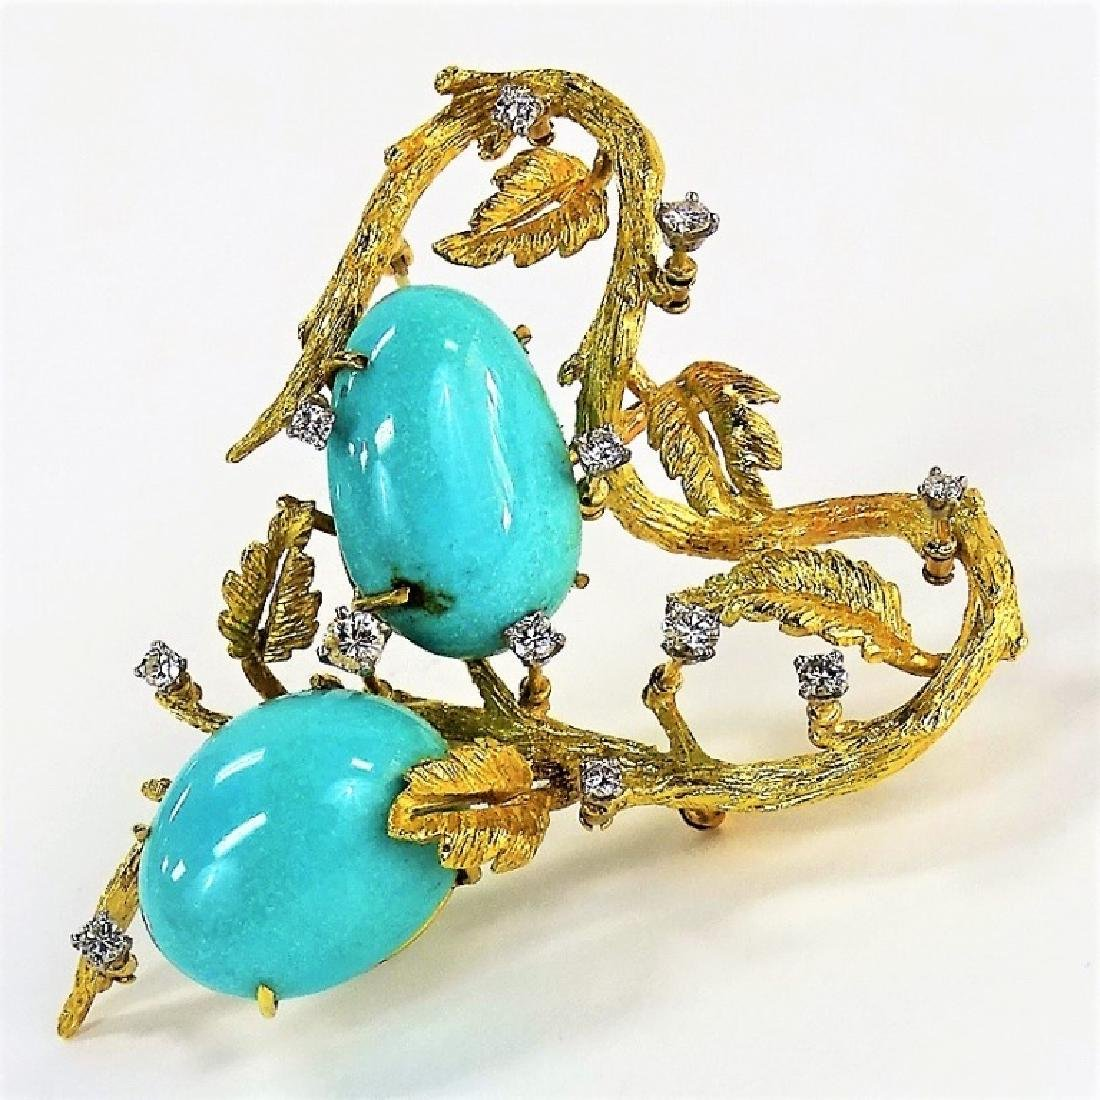 14KT GOLD TURQUOISE ENTREMBLE DIAMOND BROOCH